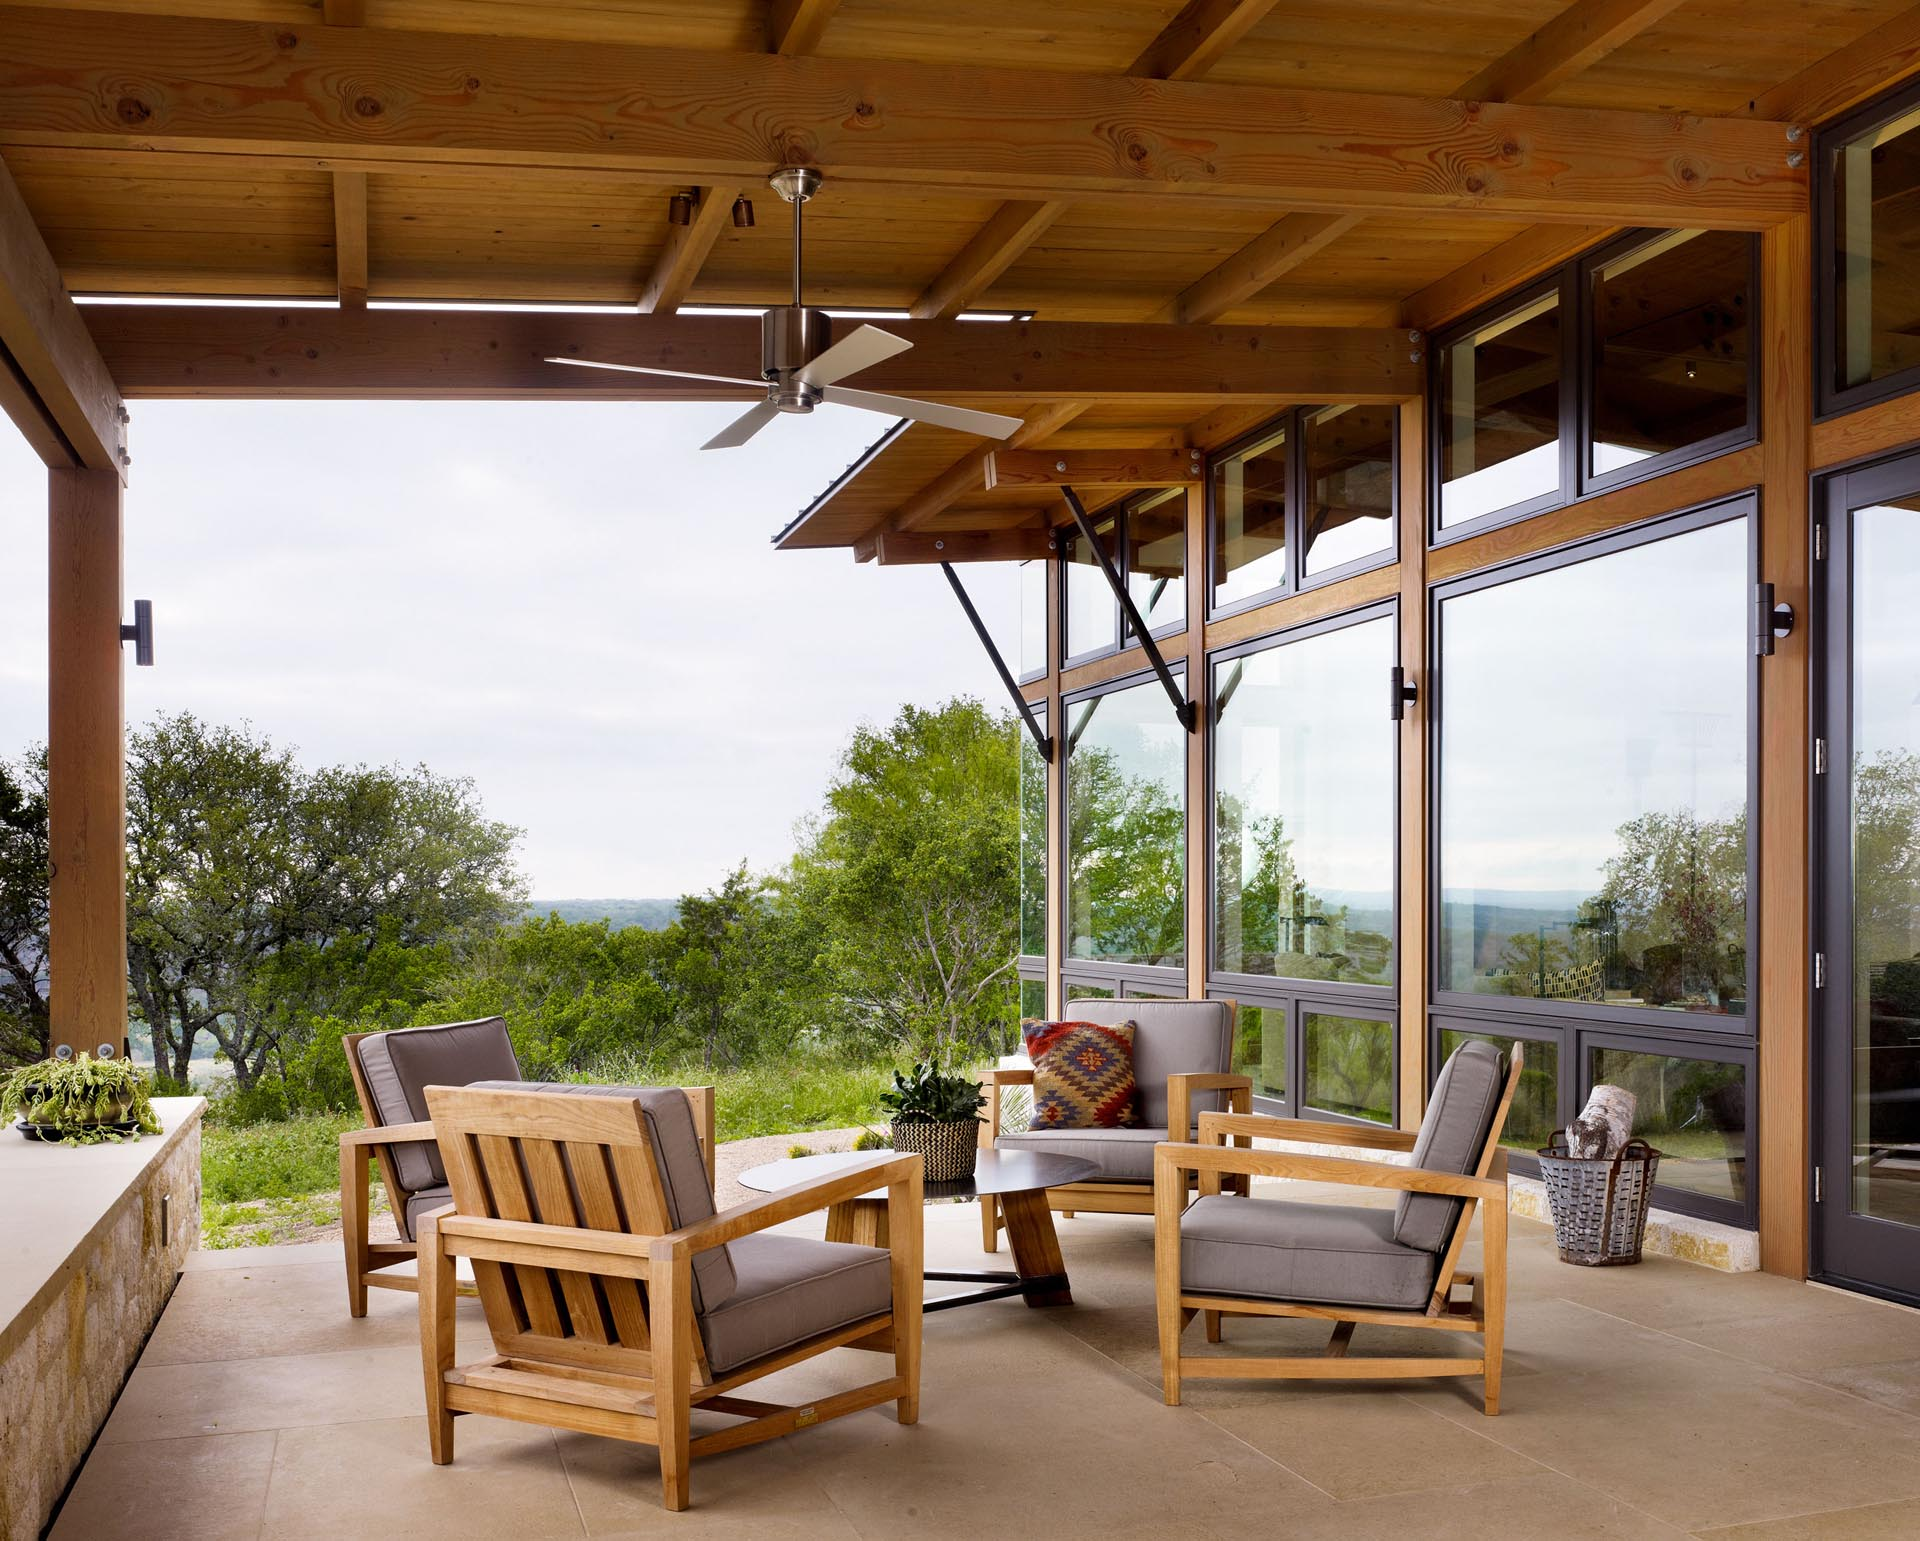 A covered porch with exposed wood beams.